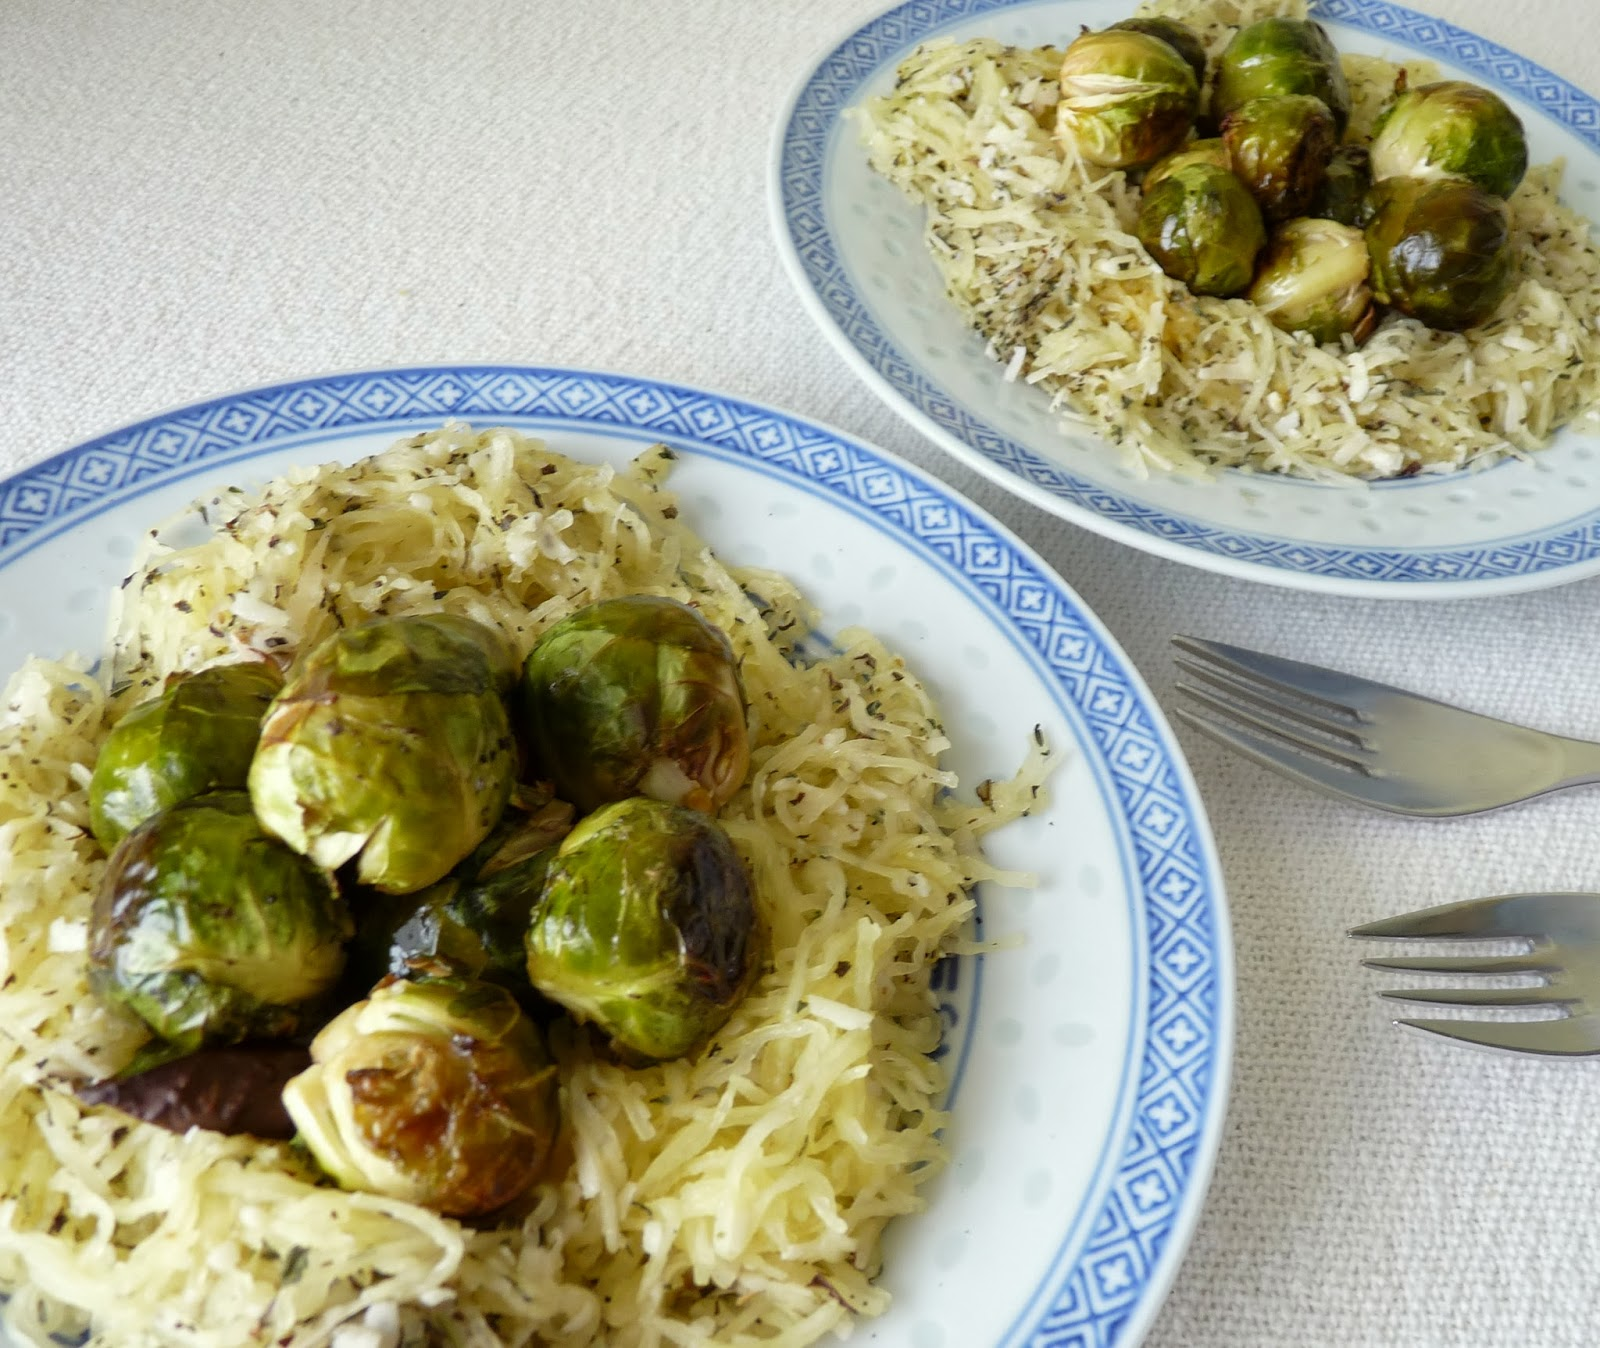 Roasted Brussels Sprouts in Spaghetti Squash Nests